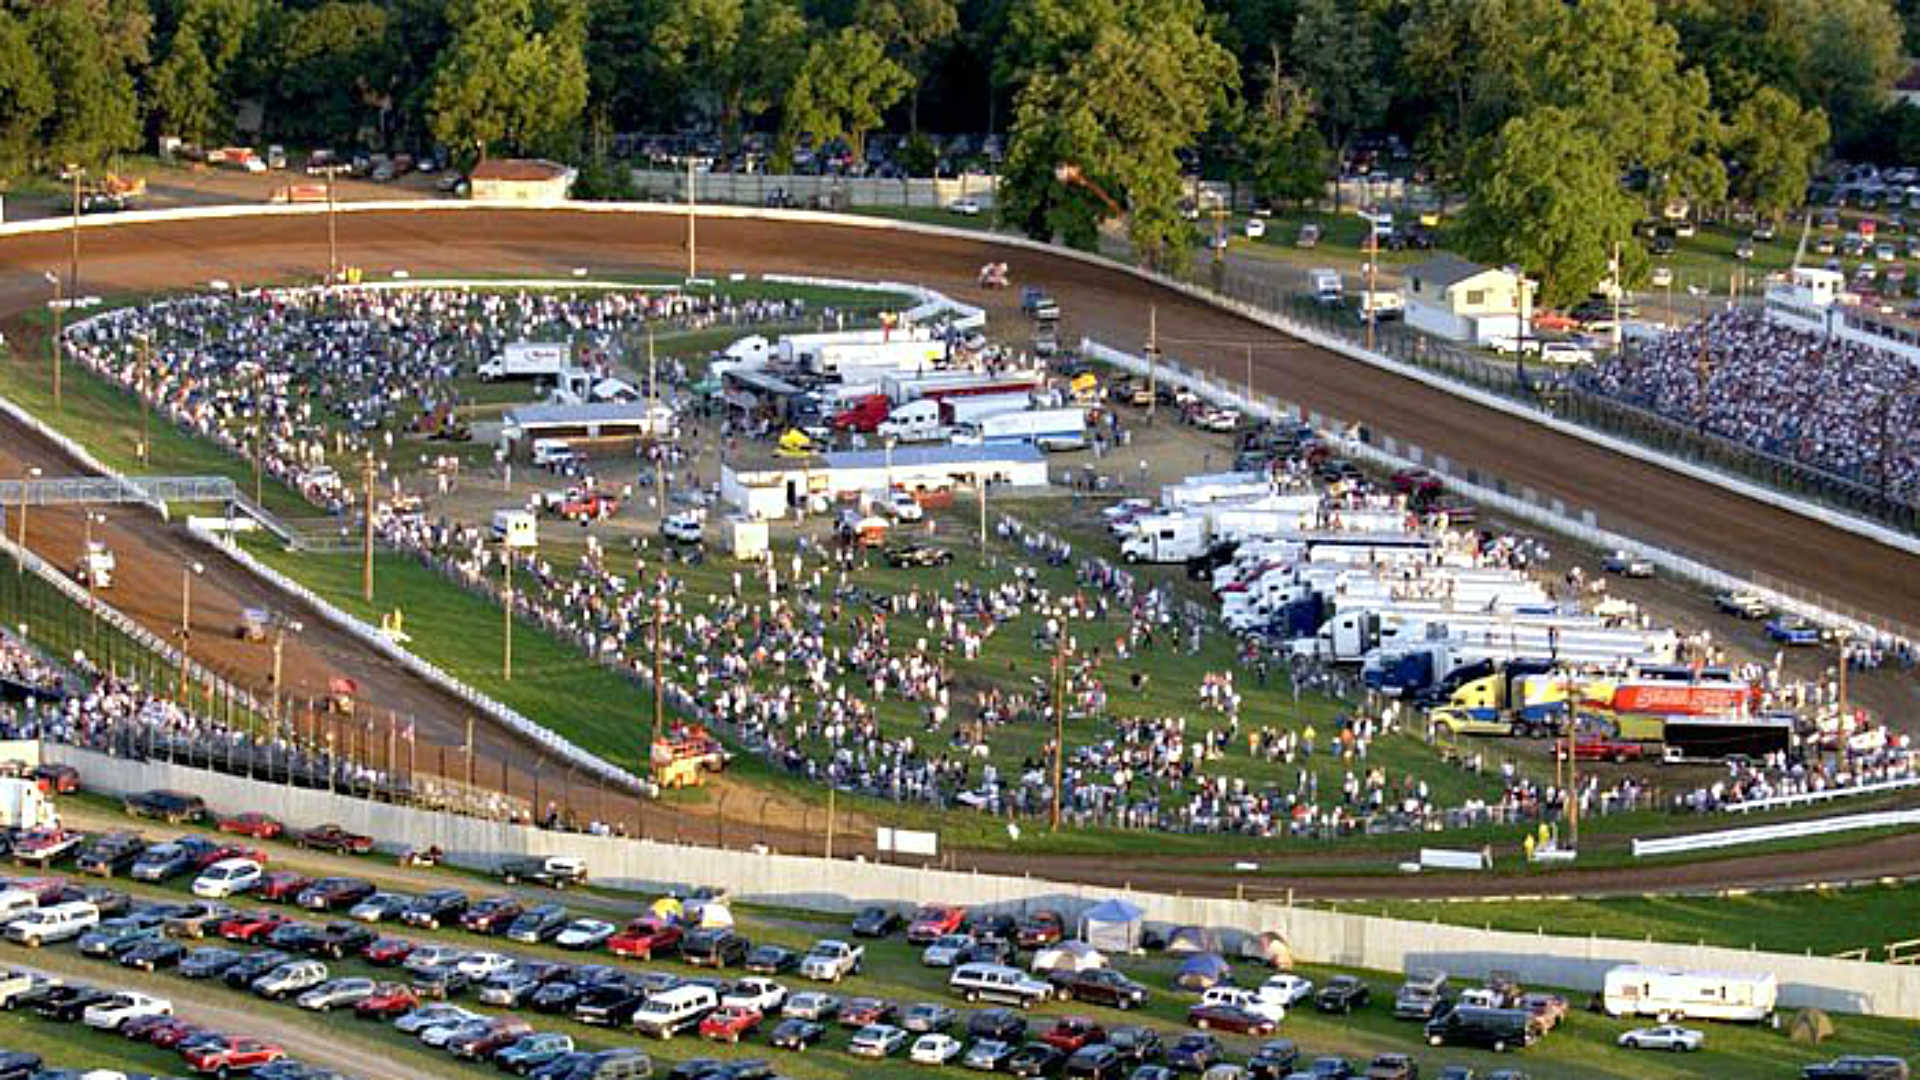 Sprint car driver killed in accident at Pennsylvania